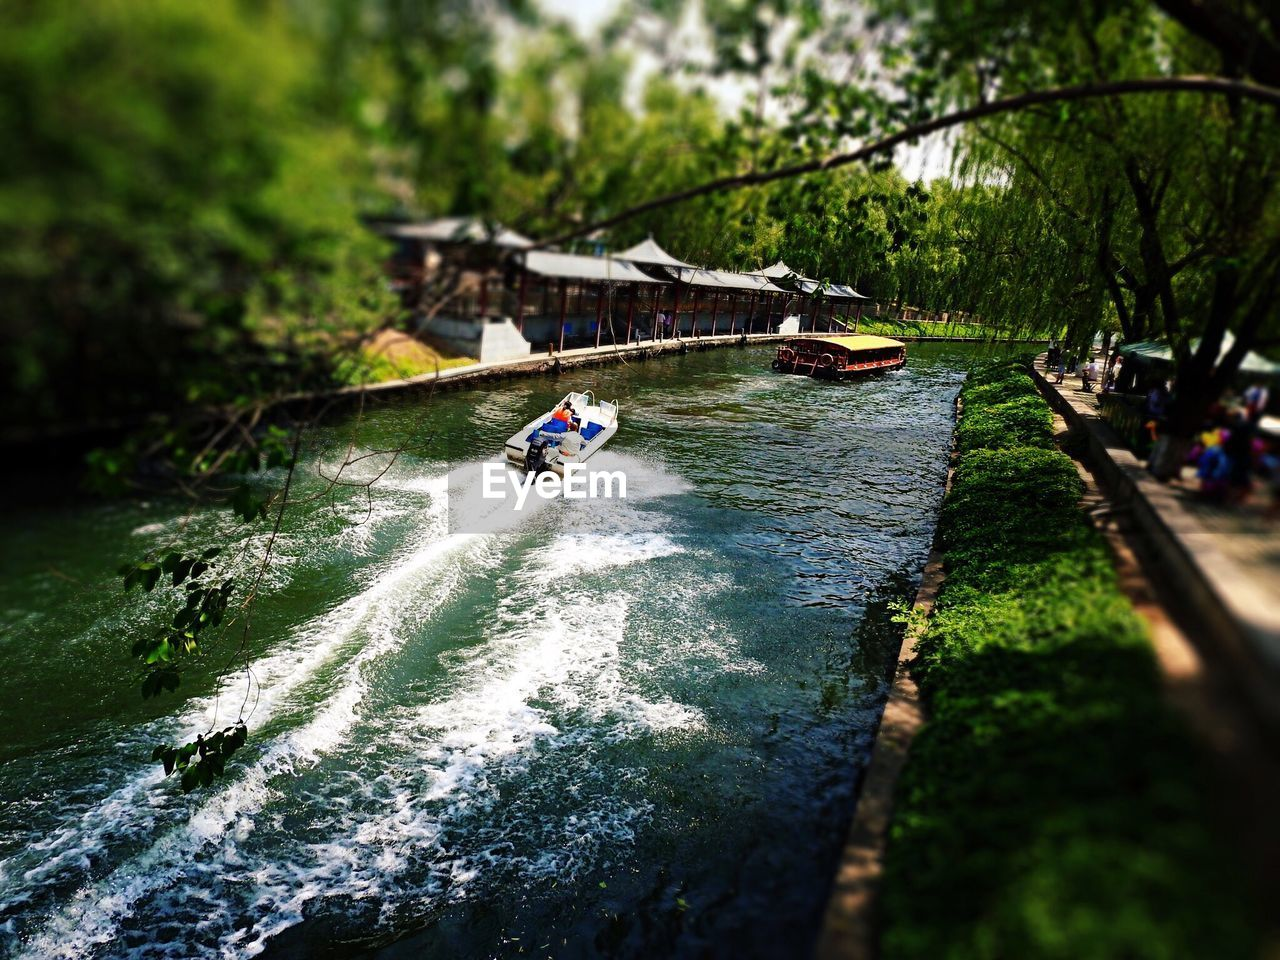 water, river, adventure, day, nautical vessel, real people, motion, outdoors, nature, transportation, tree, leisure activity, speed, oar, one person, men, kayak, rowing, people